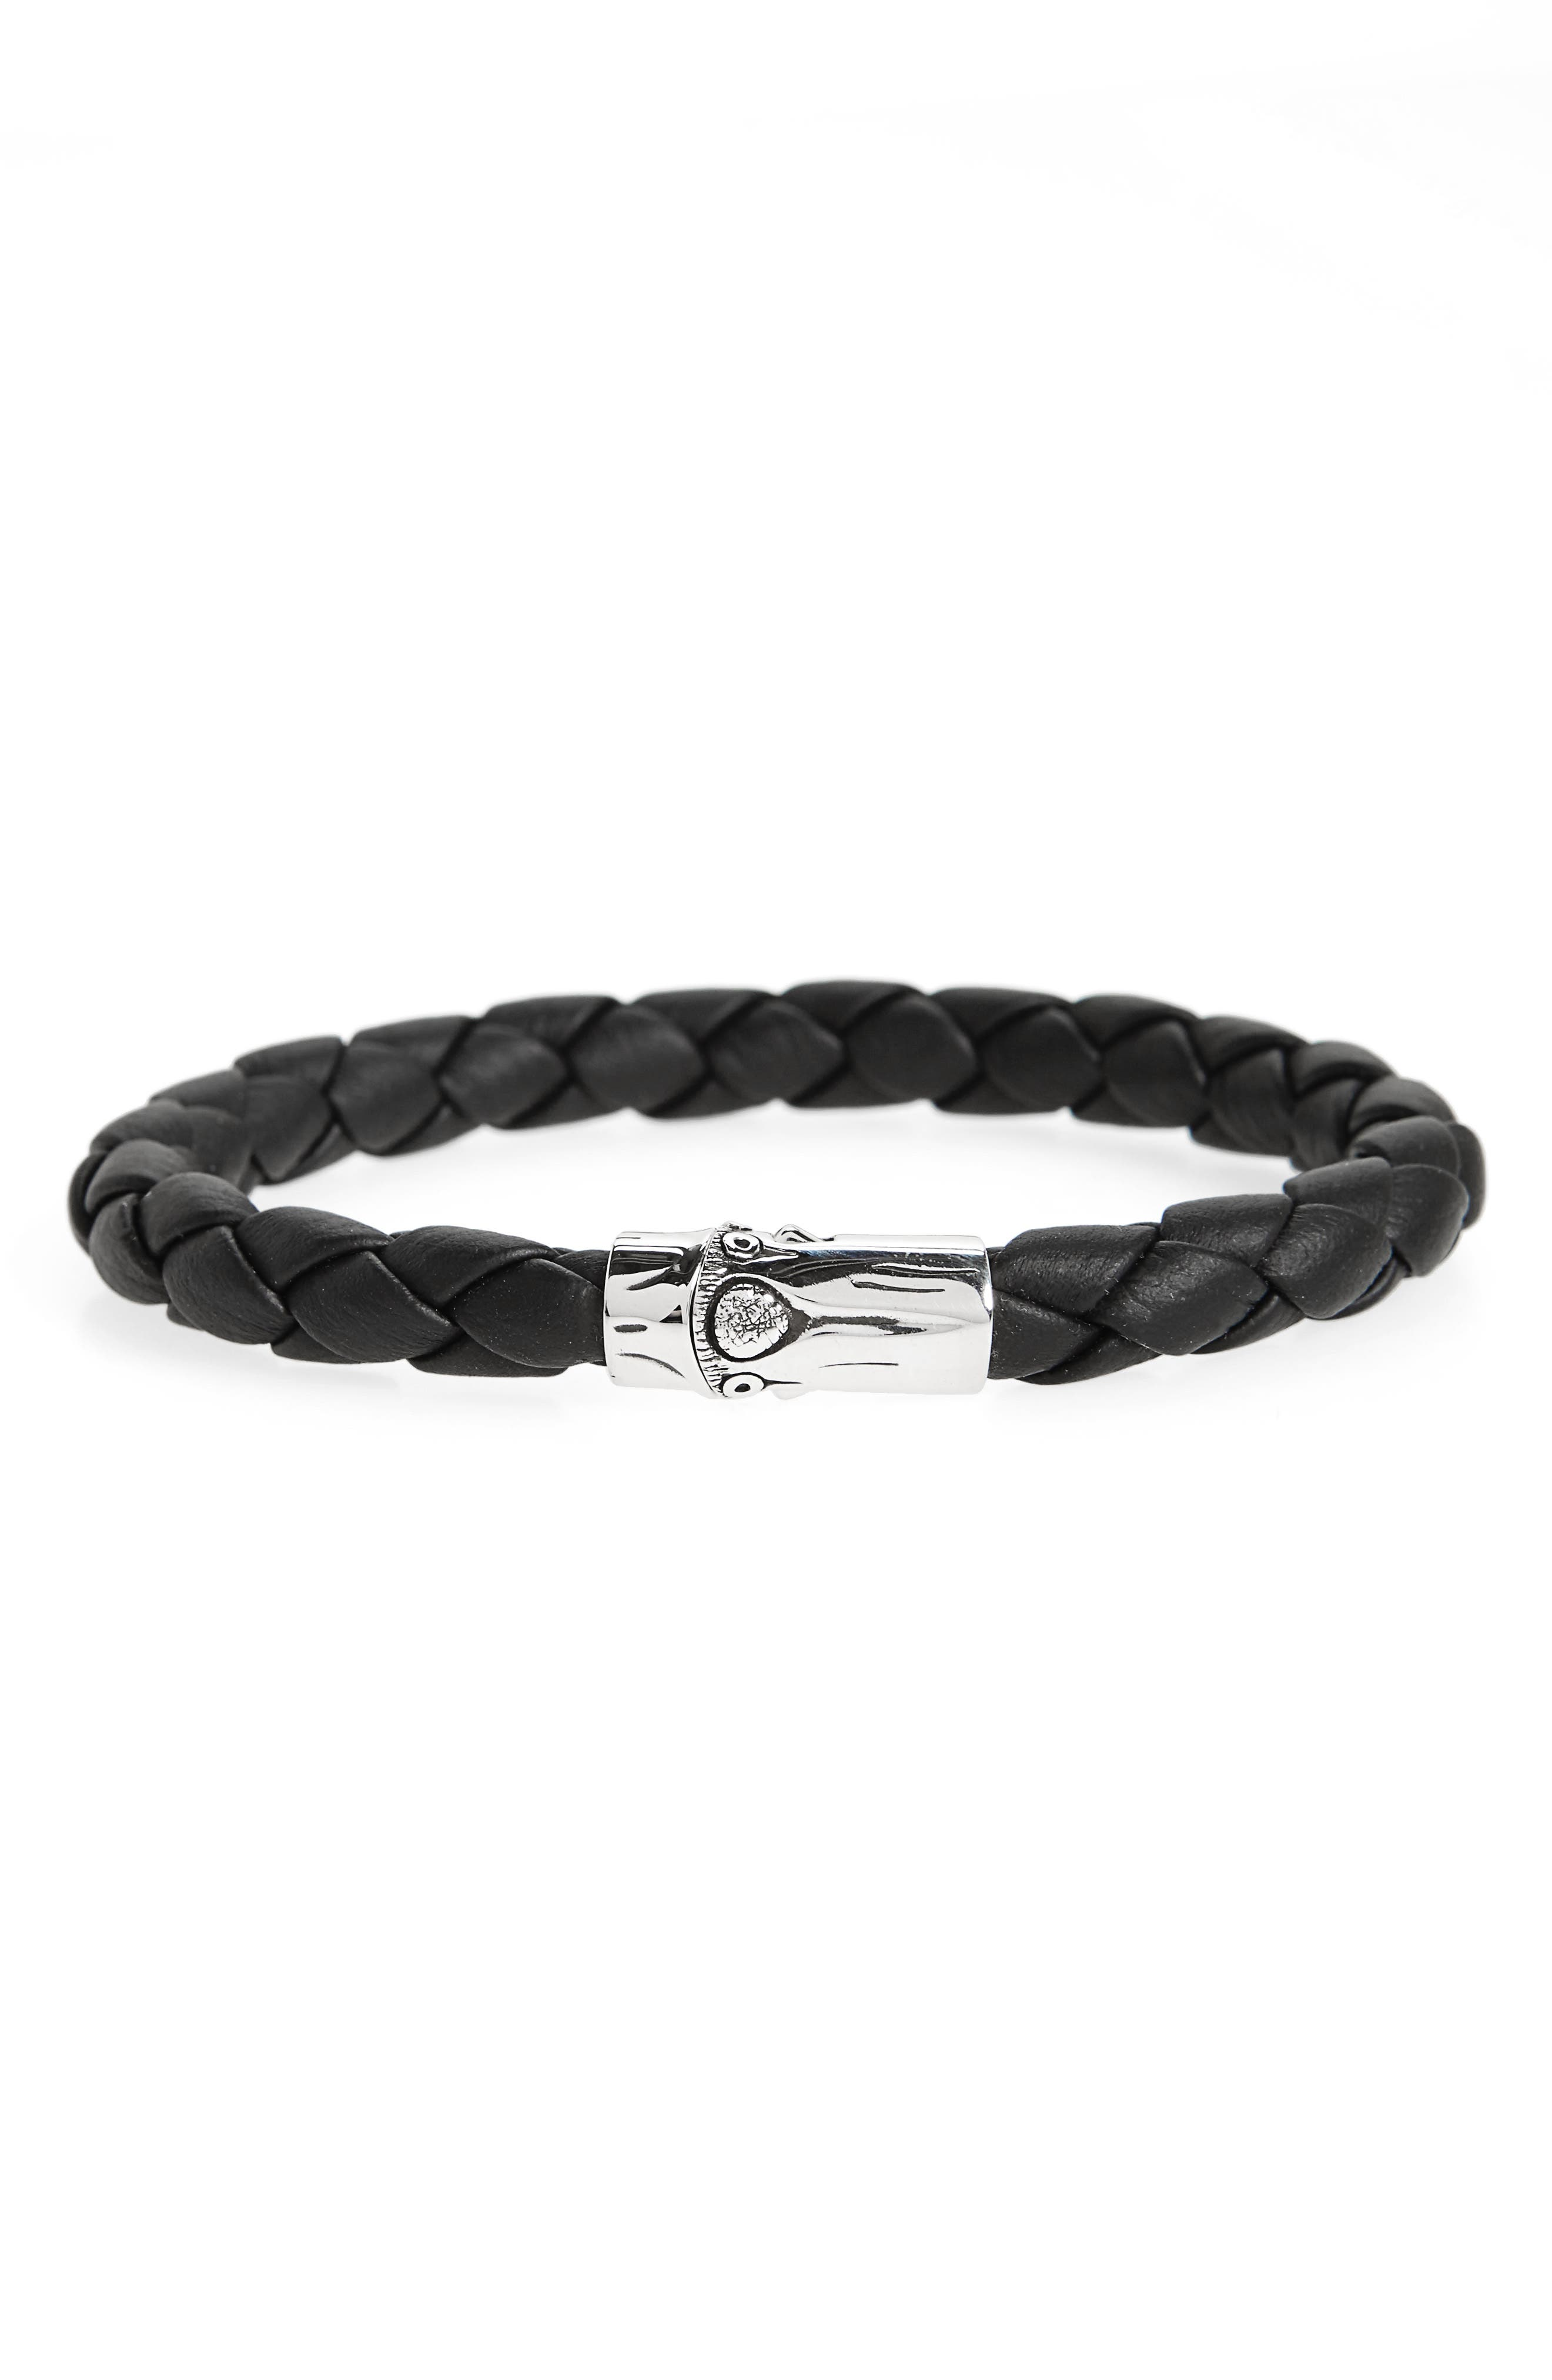 Bamboo Braided Leather Bracelet,                             Main thumbnail 1, color,                             Silver/ Black